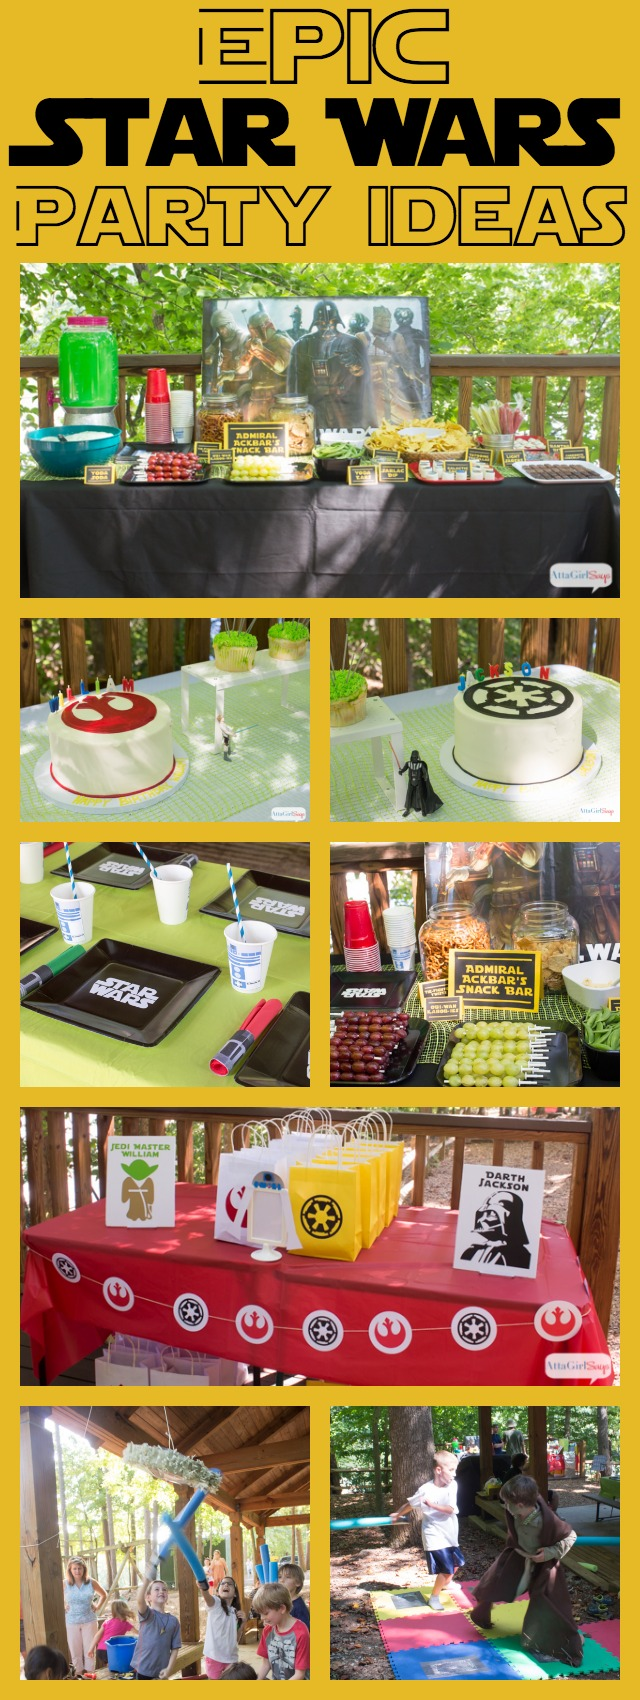 Epic Star Wars Party Ideas